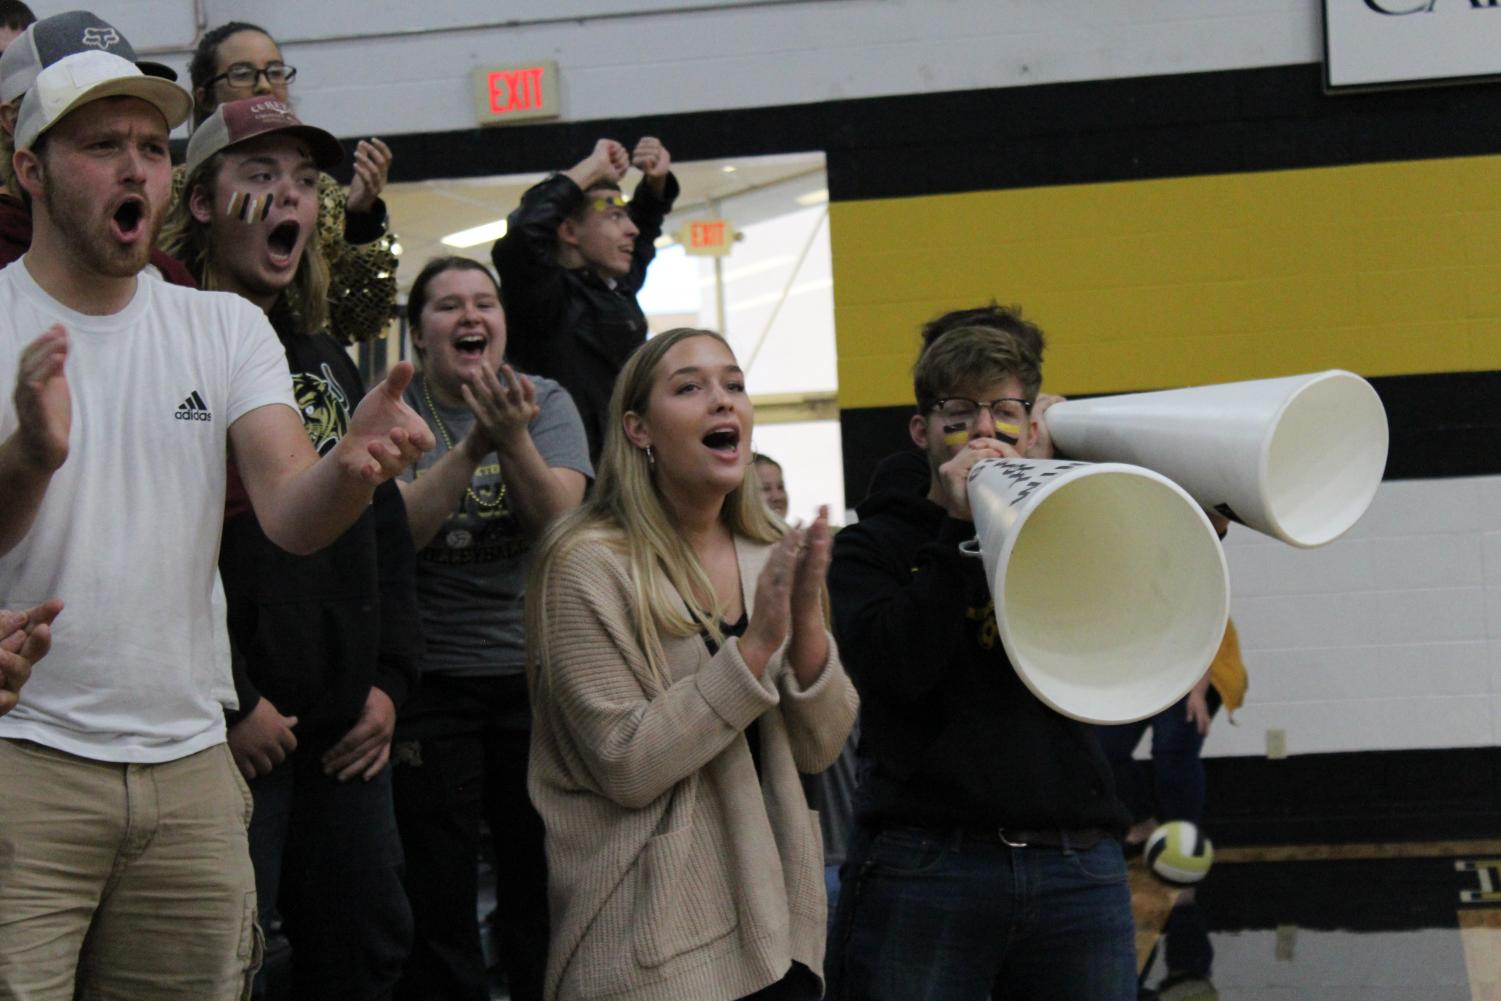 The seniors cheering very energetically.